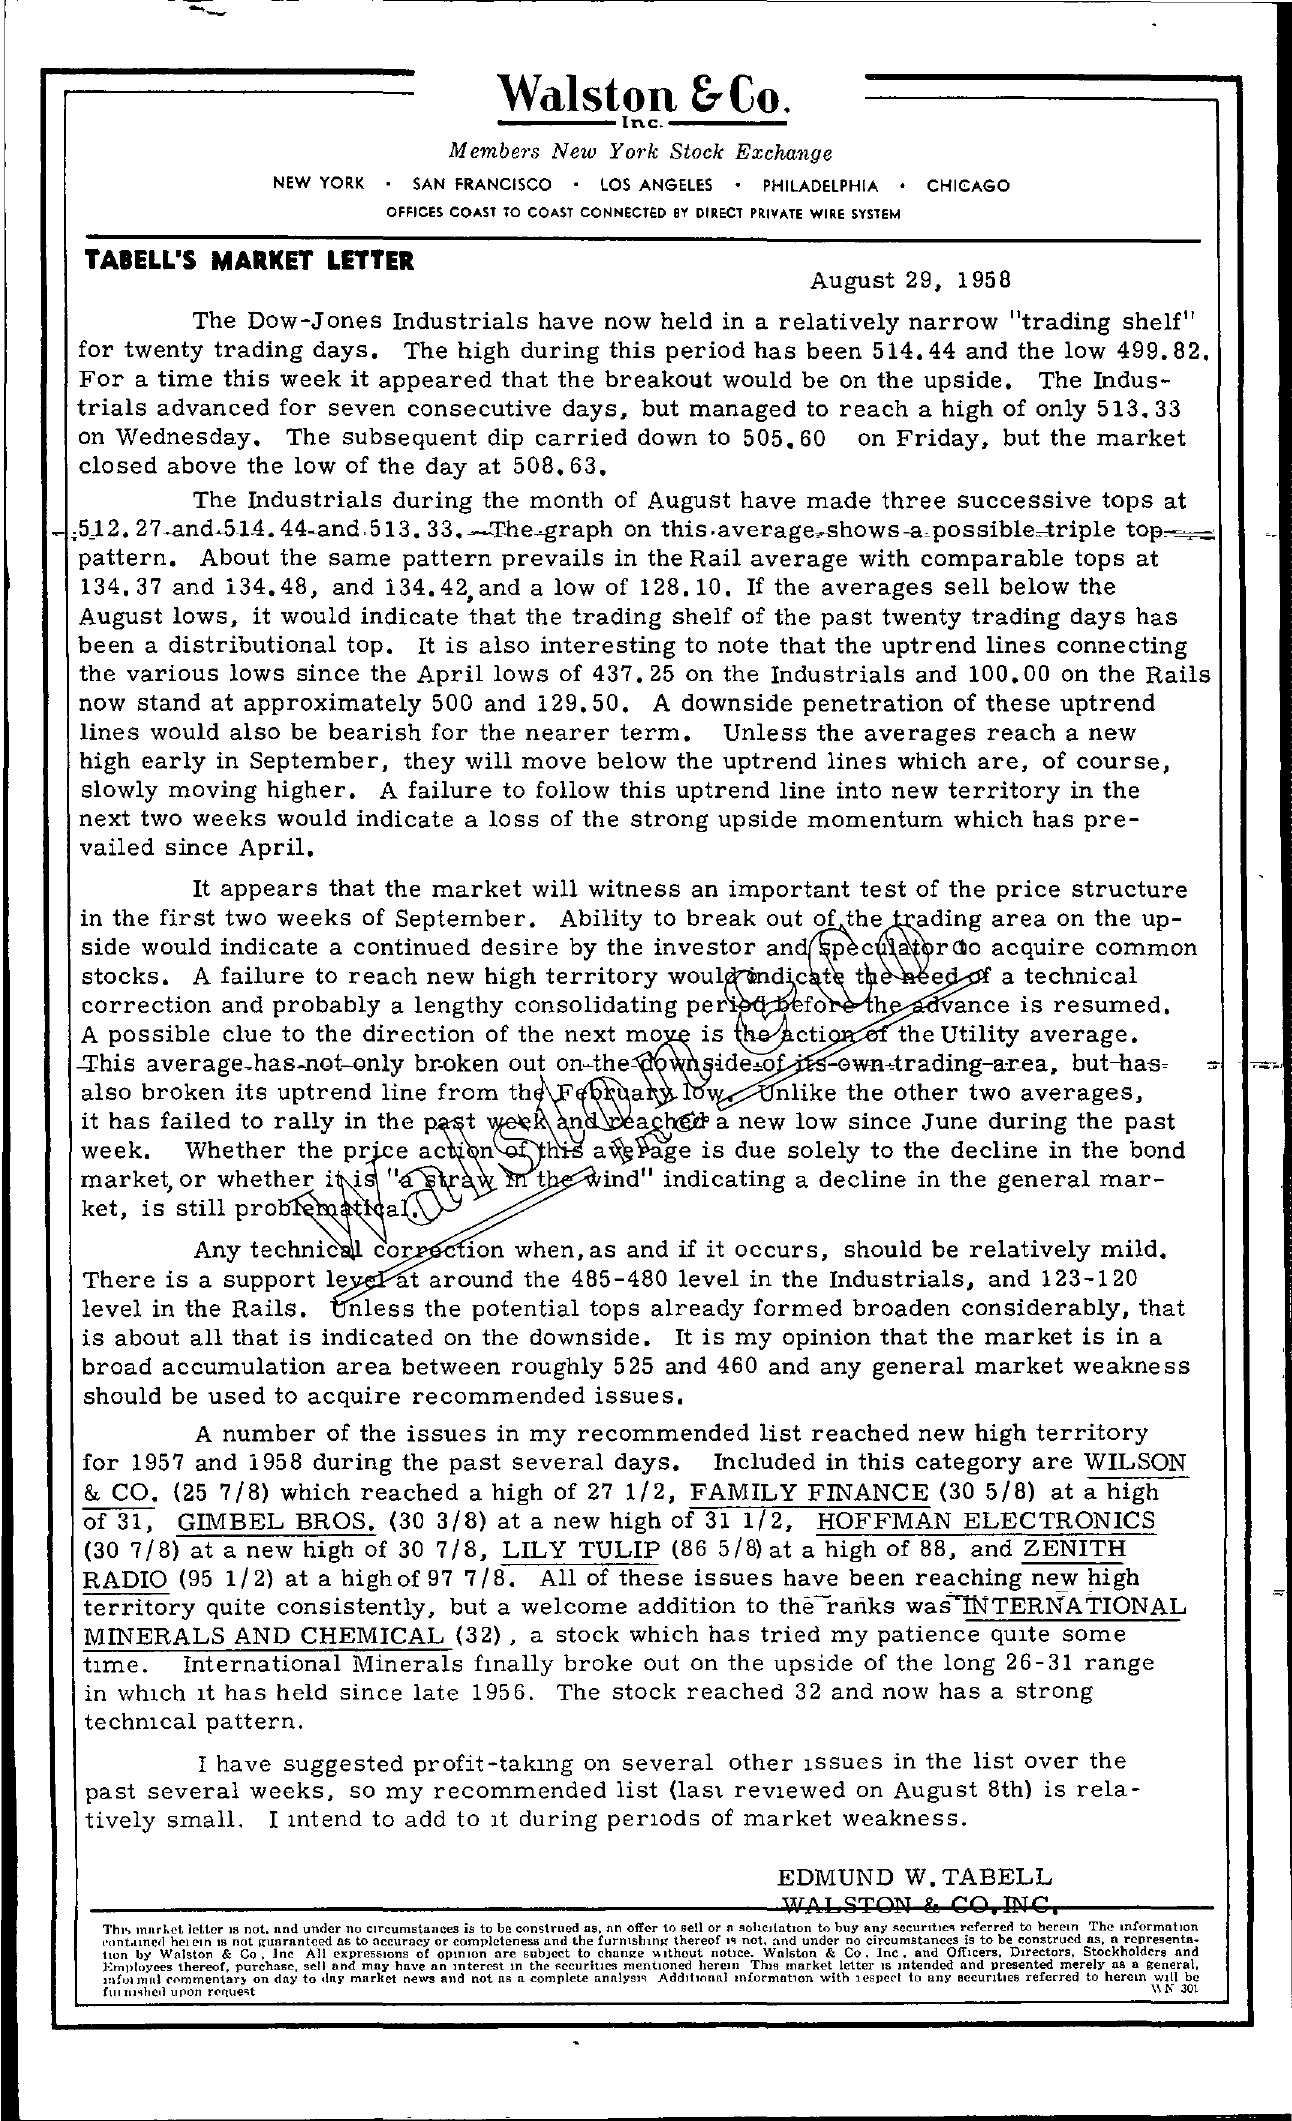 Tabell's Market Letter - August 29, 1958